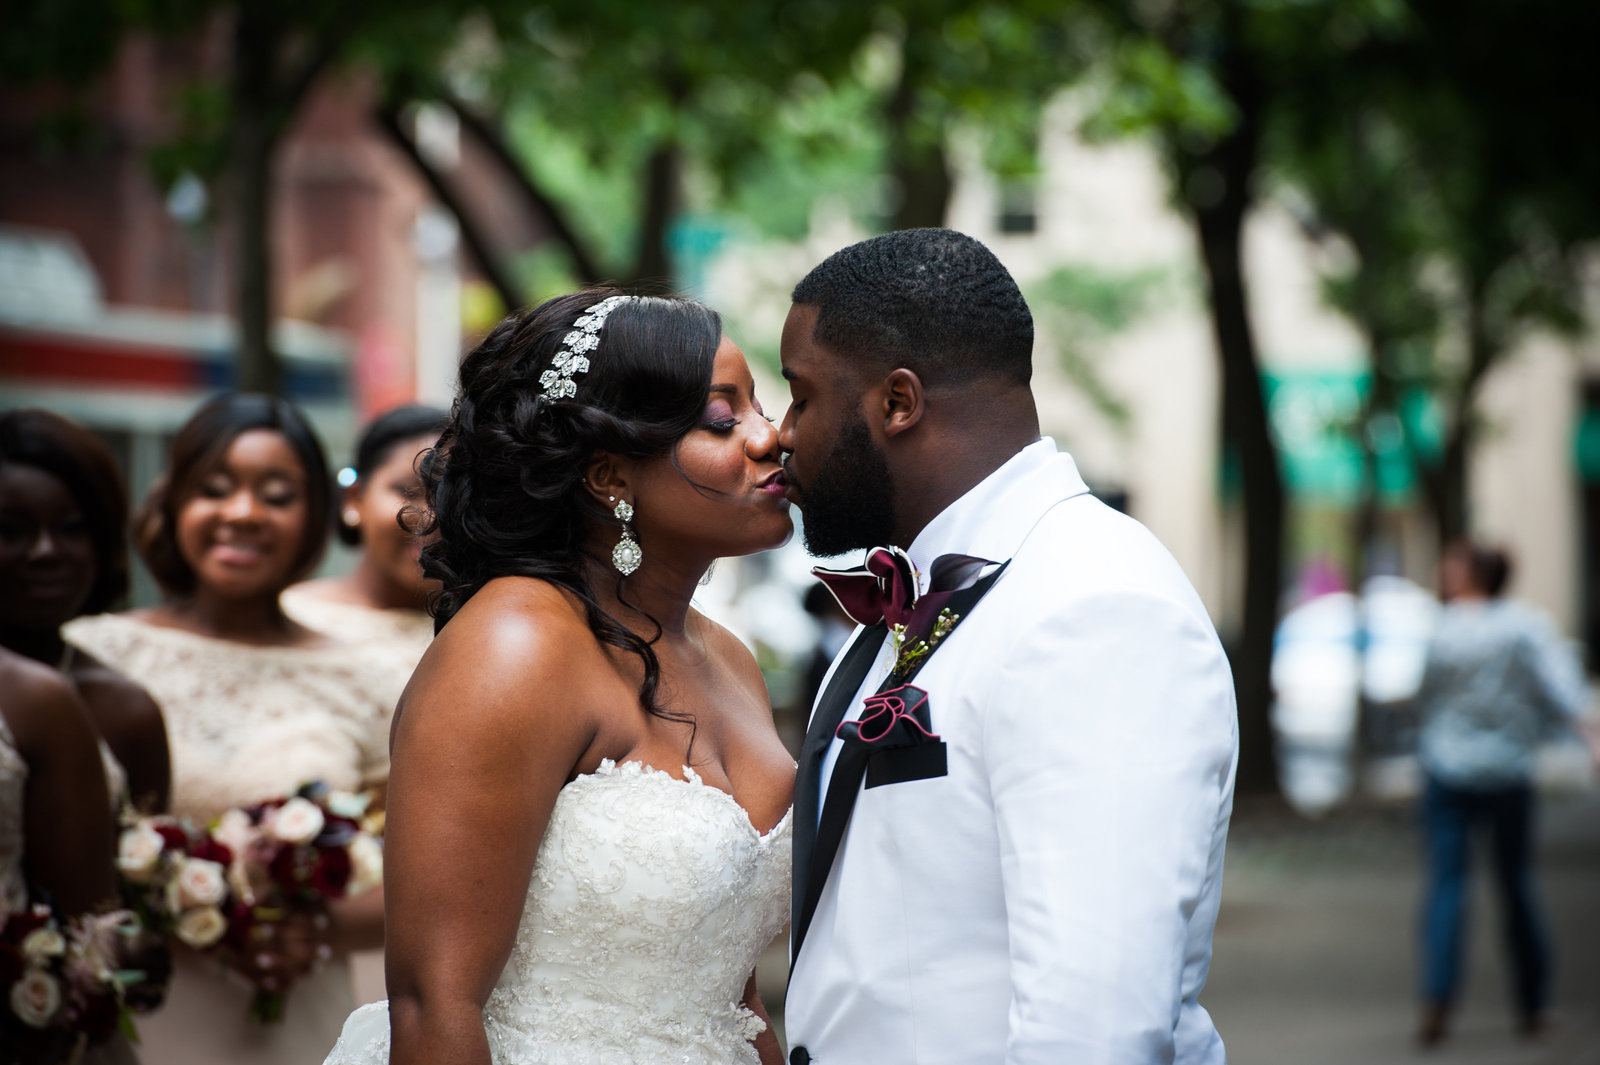 Bridal portraits in rittenhouse square philadelphia,  photos  by Greg Davenport Photography bride gown from Kleinfeld Bridal groom in custom tux